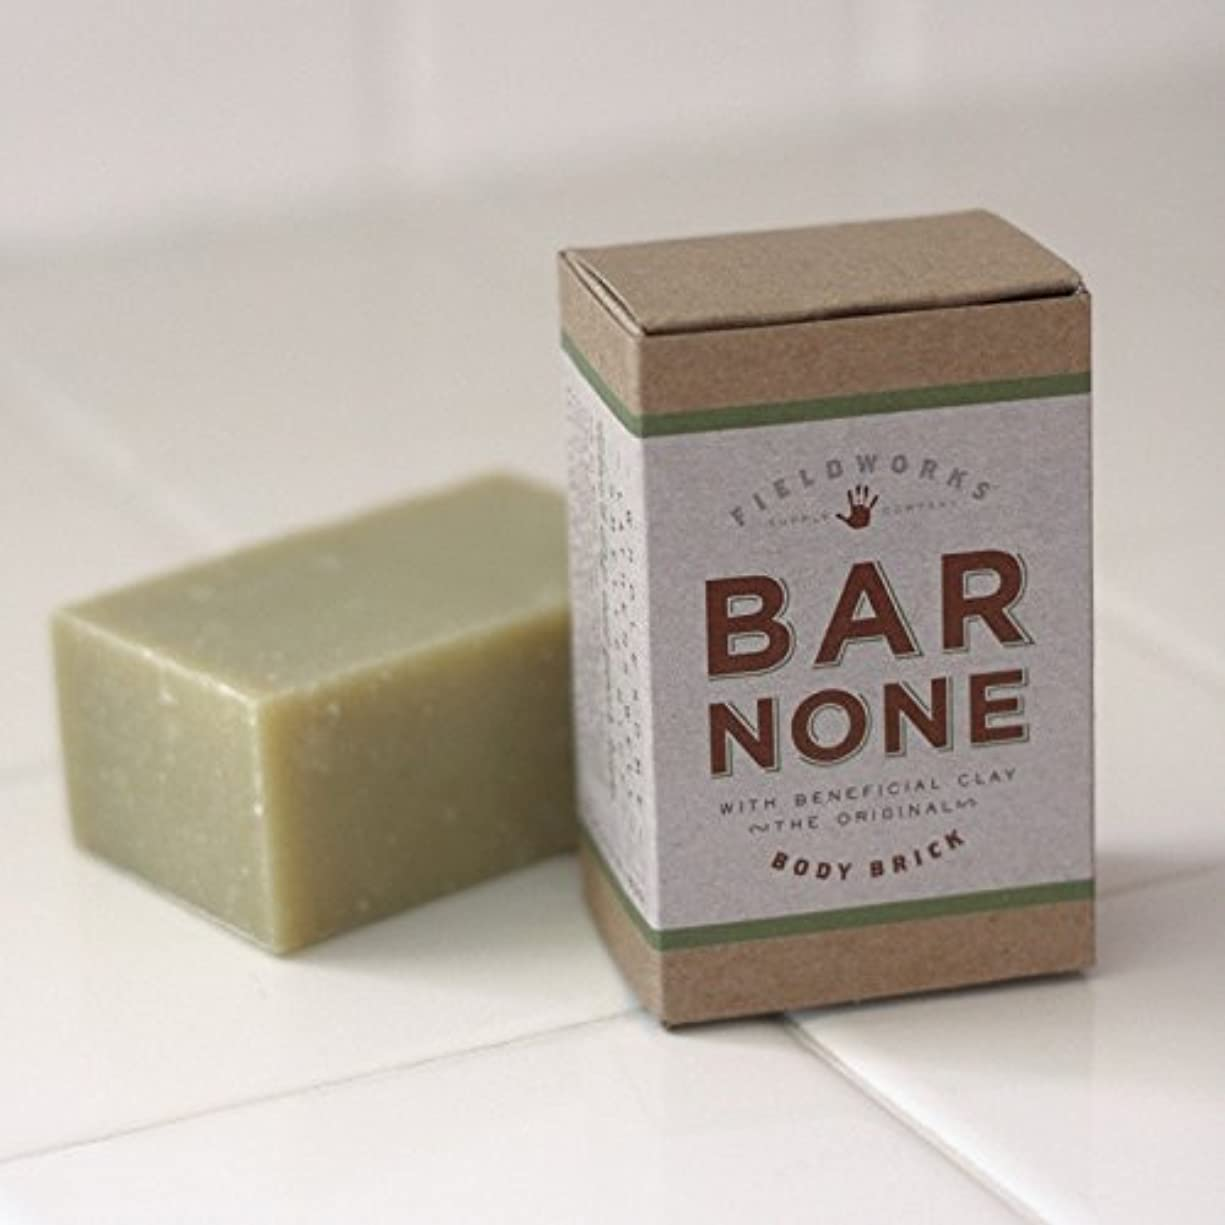 段階快適プロテスタントBar None Body and Shampoo Brick With Beneficial Bentonite Clay Mens Organic Soap by Fieldworks